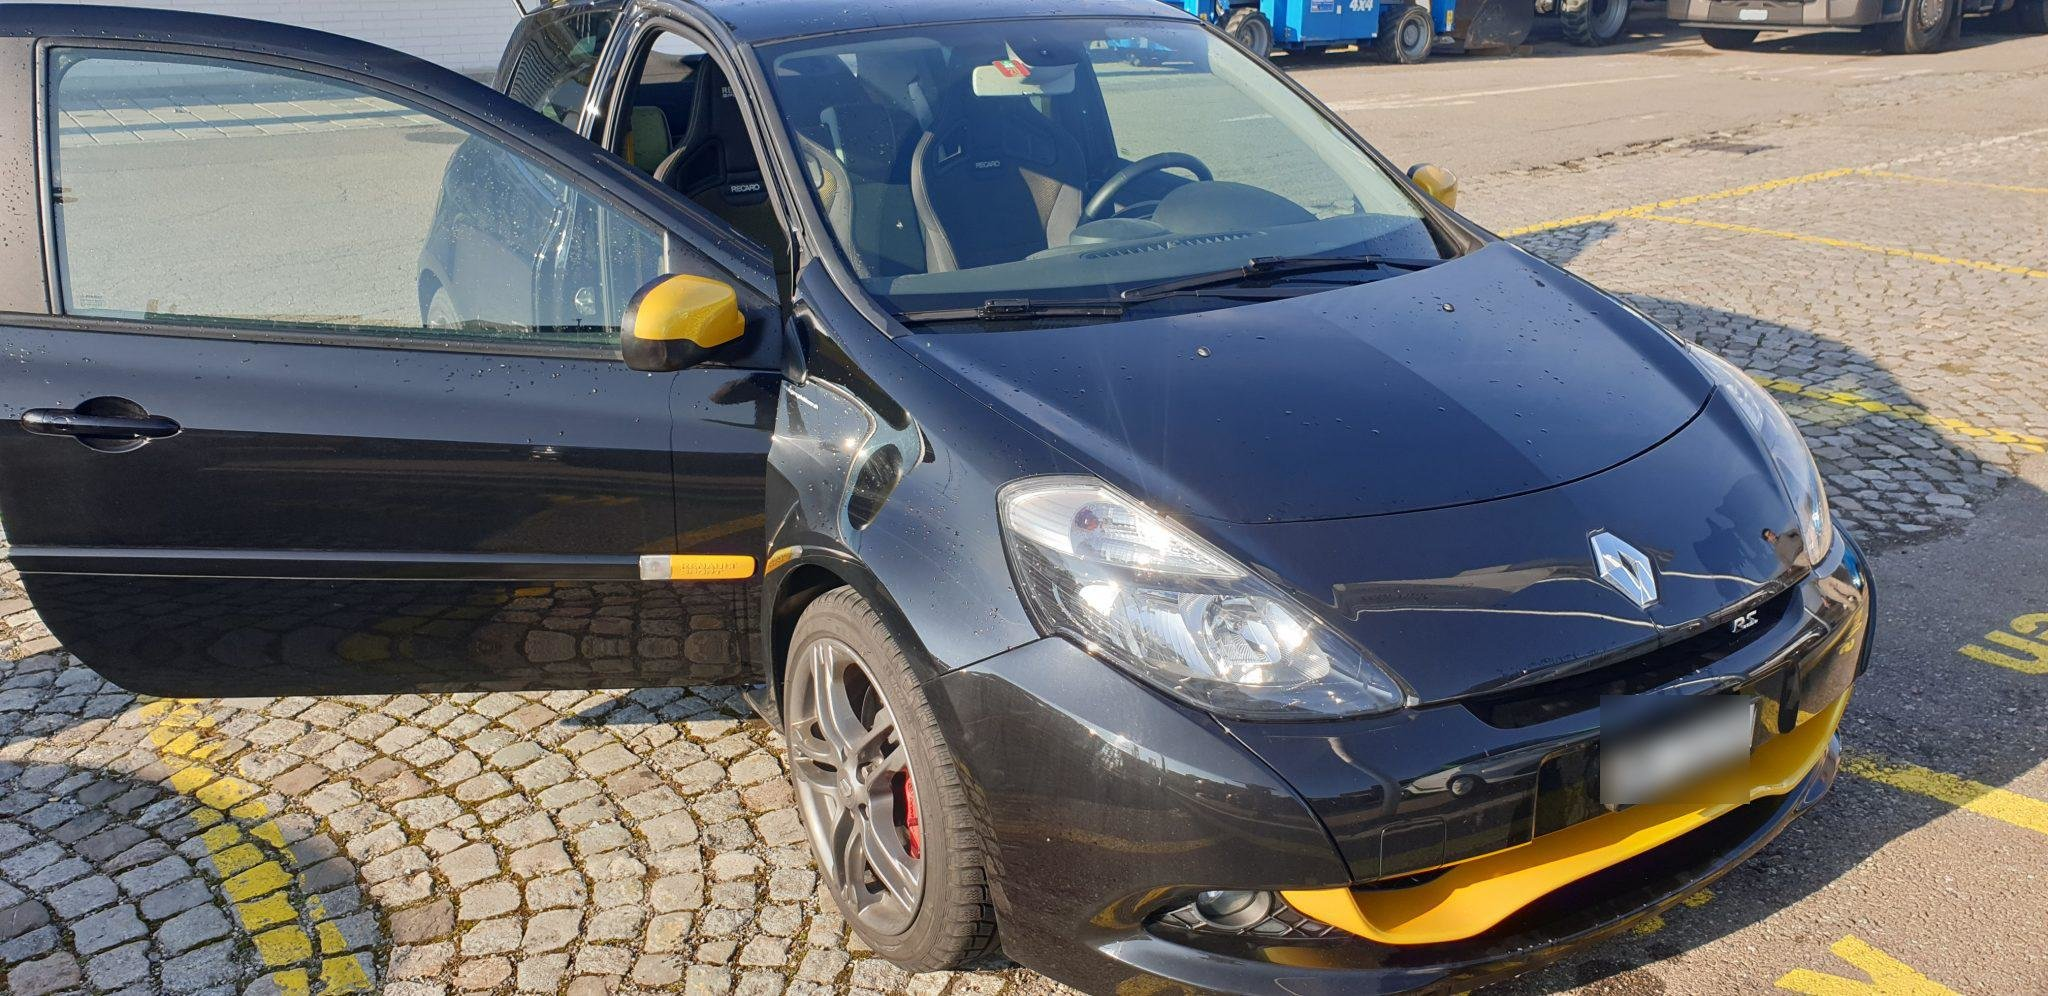 2012 Renault Clio For Sale (picture 1 of 6)